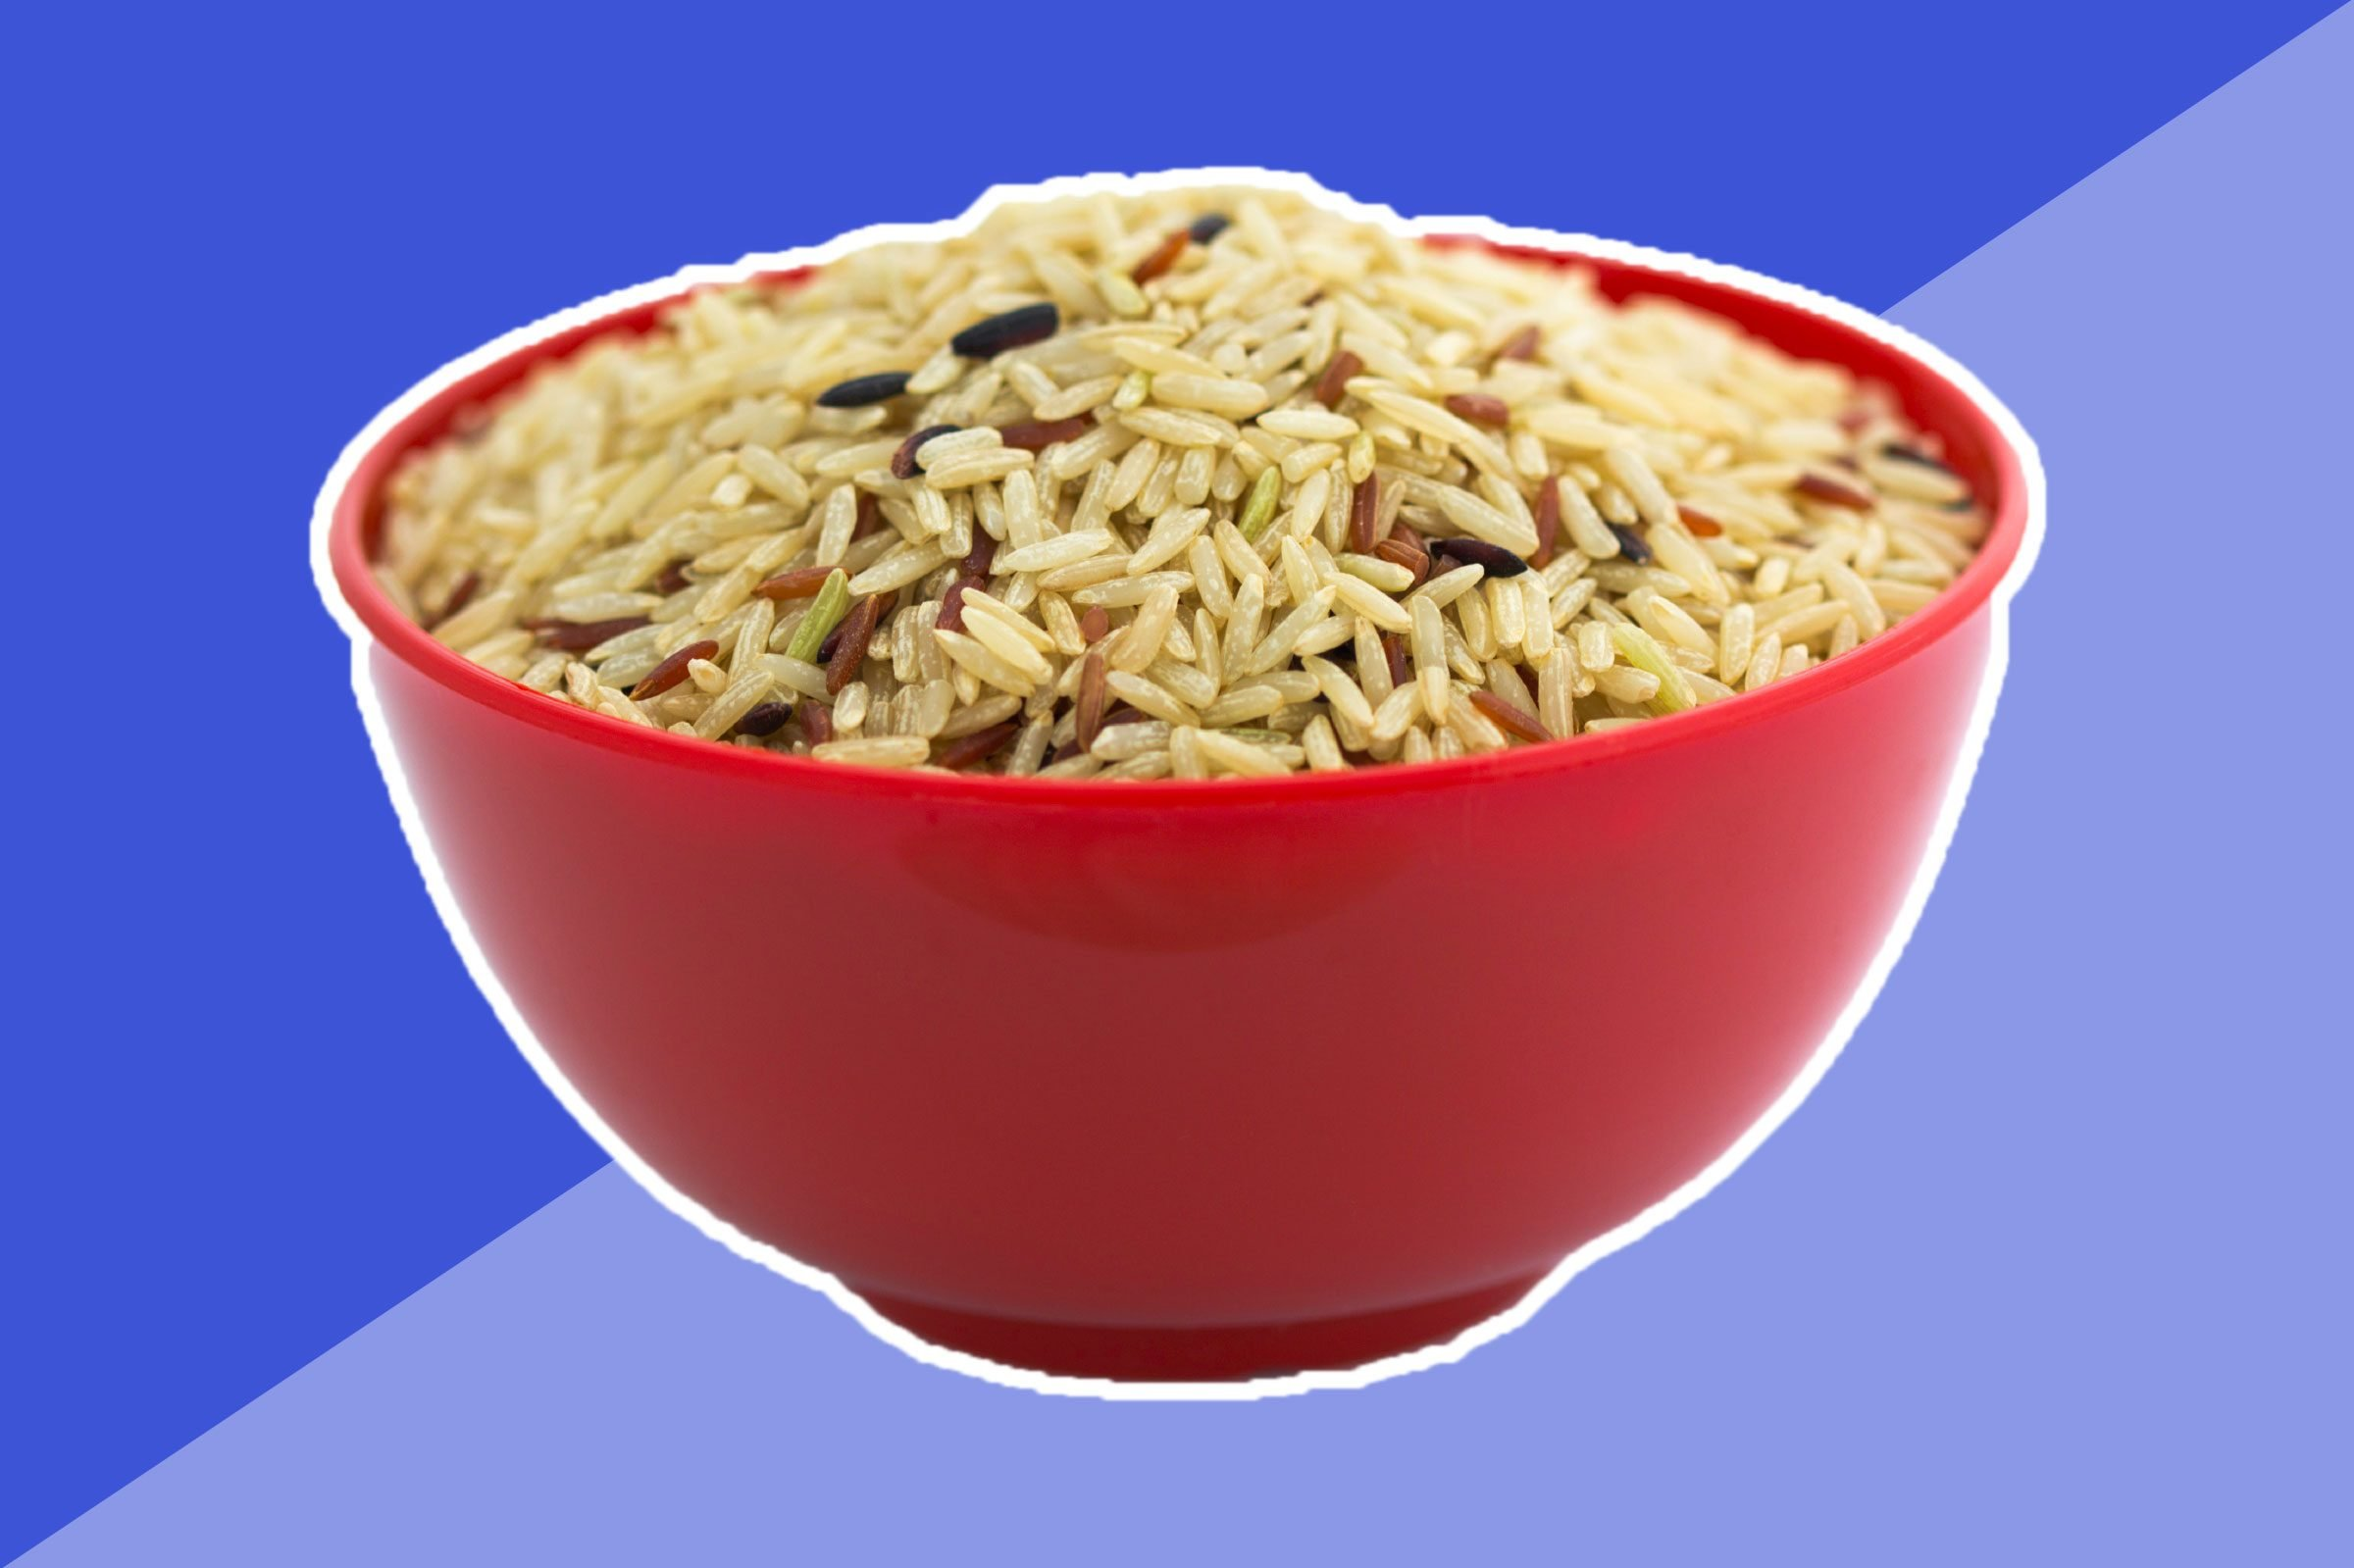 10 foods that all diabetics should avoid - Healthy Carb Brown Rice